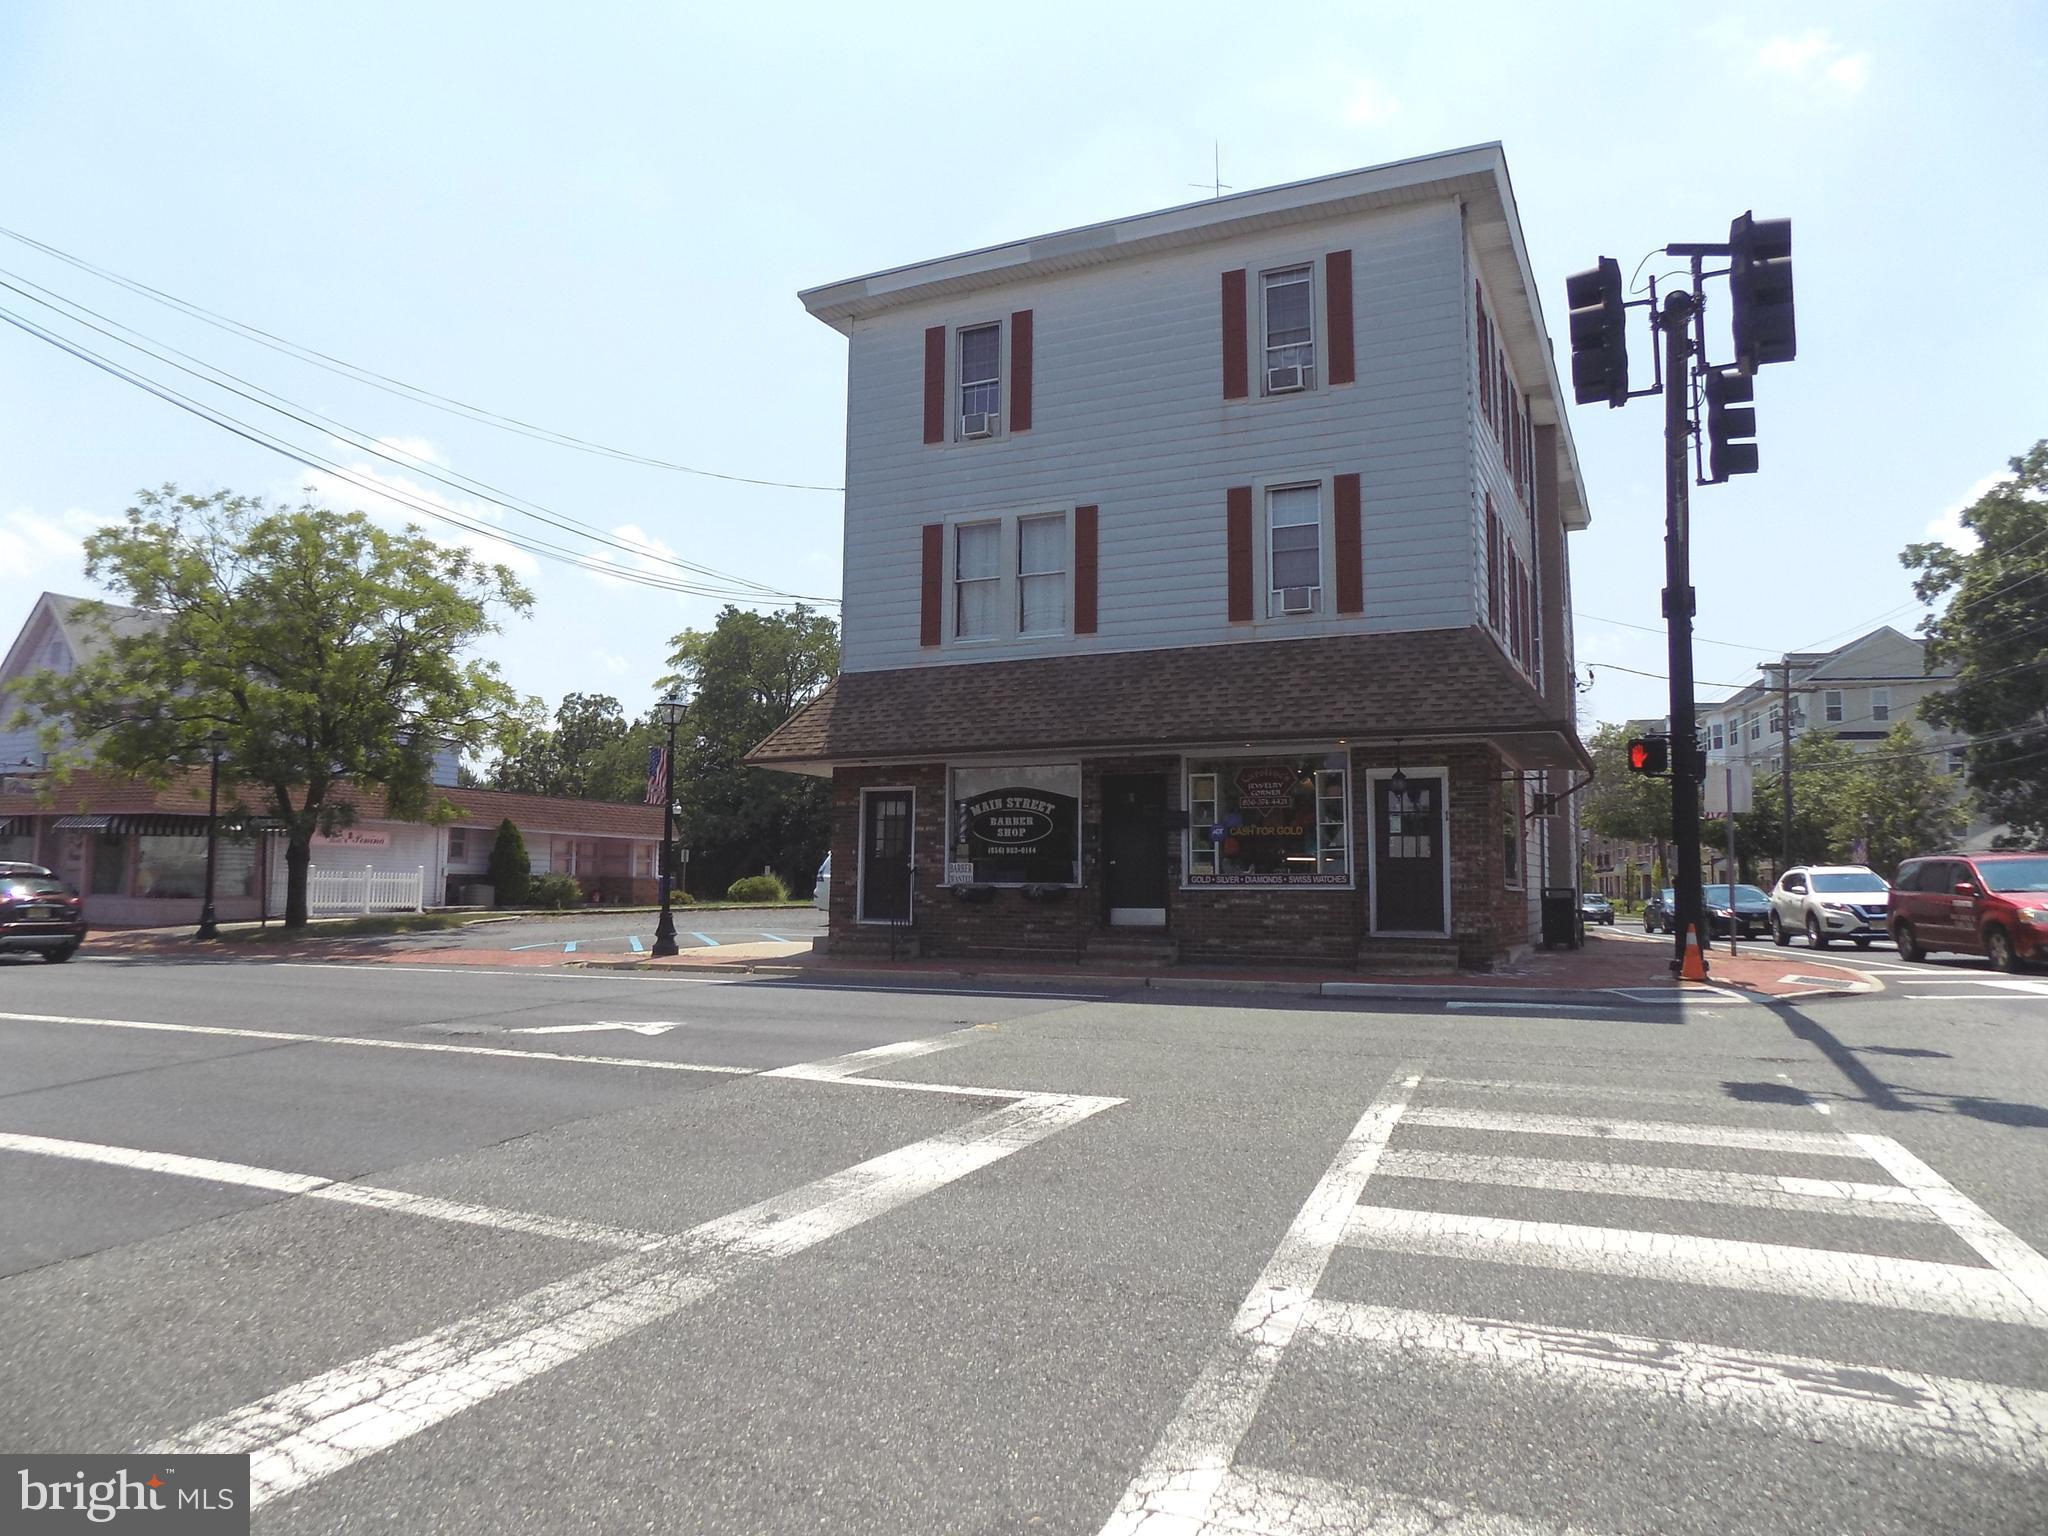 1 E MAIN STREET, MARLTON, NJ 08053